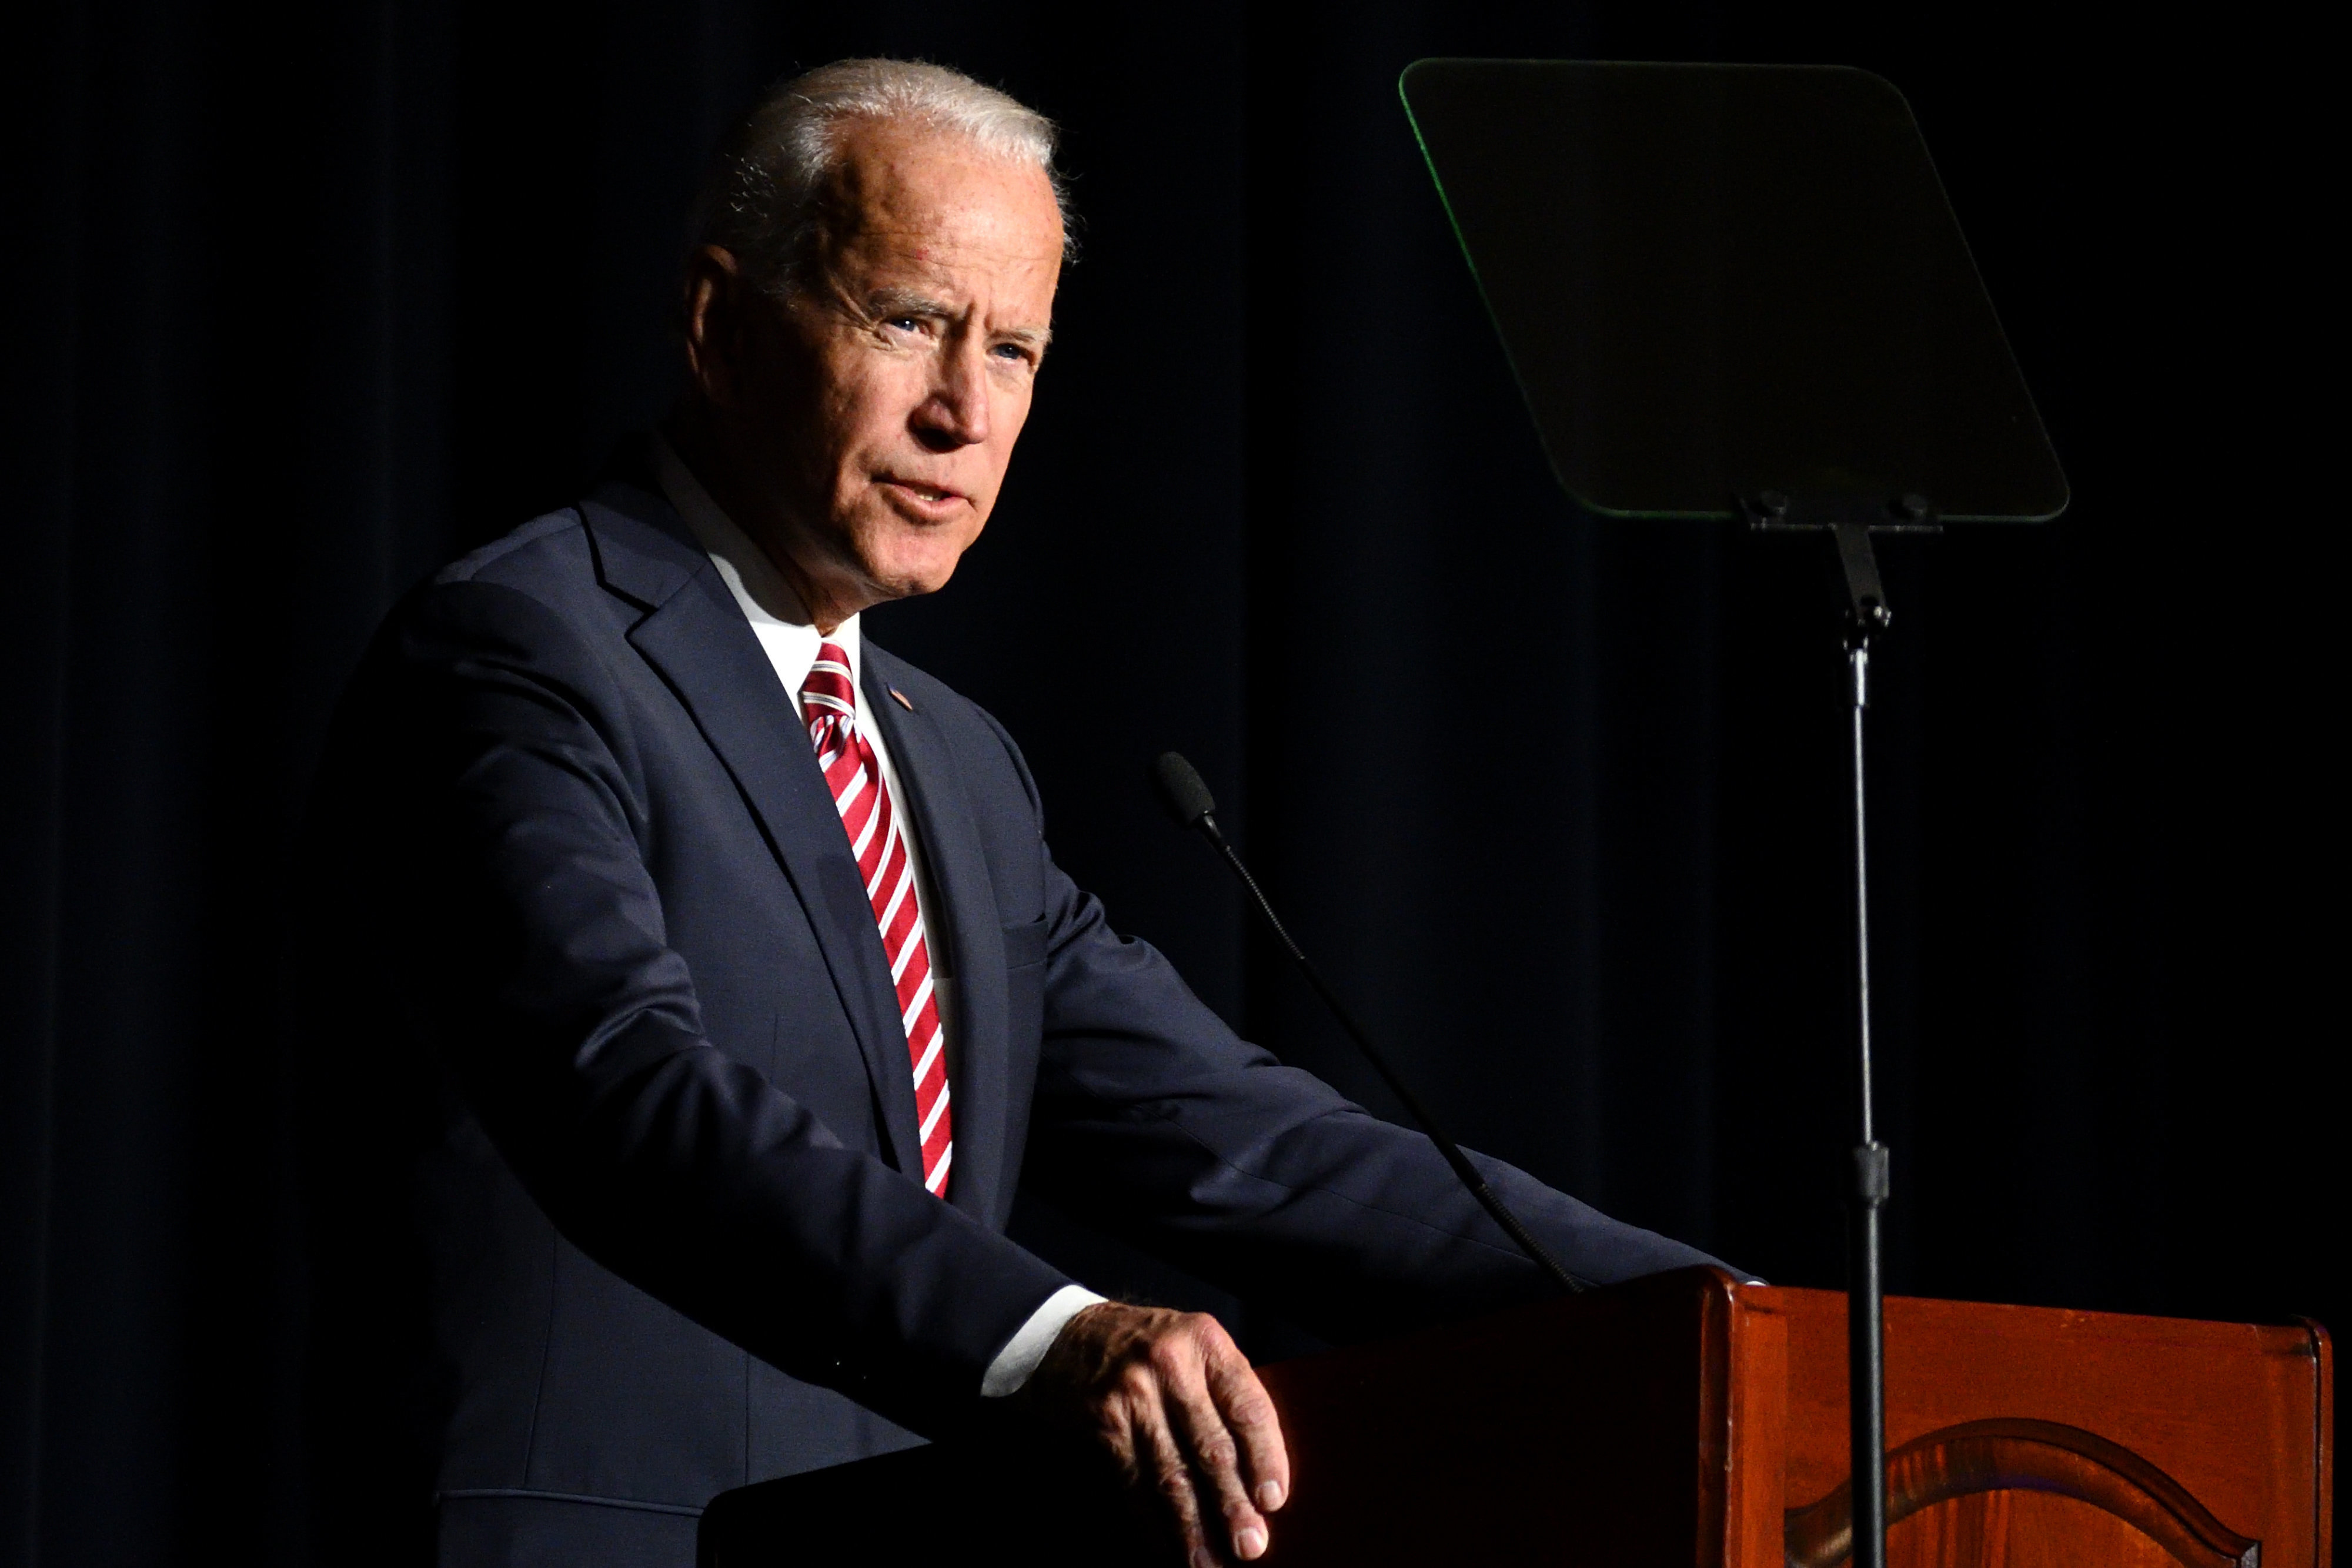 Biden's campaign said the candidate would not take money from registered lobbyists of corporate PACs. But a fundraising event